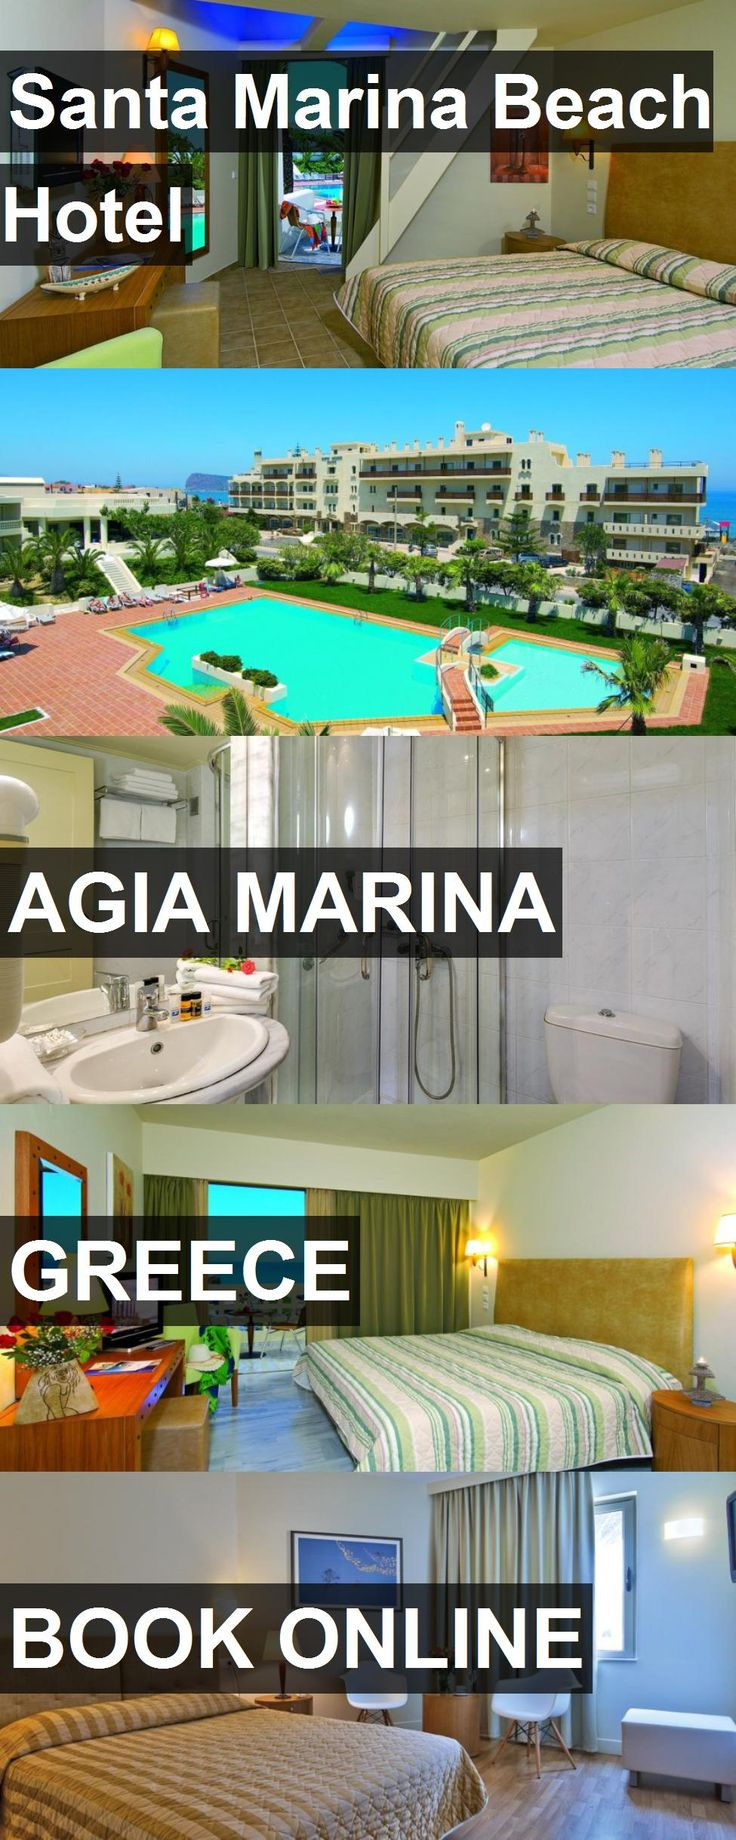 Santa Marina Beach Hotel in Agia Marina, Greece. For more information, photos, reviews and best prices please follow the link. #Greece #AgiaMarina #travel #vacation #hotel